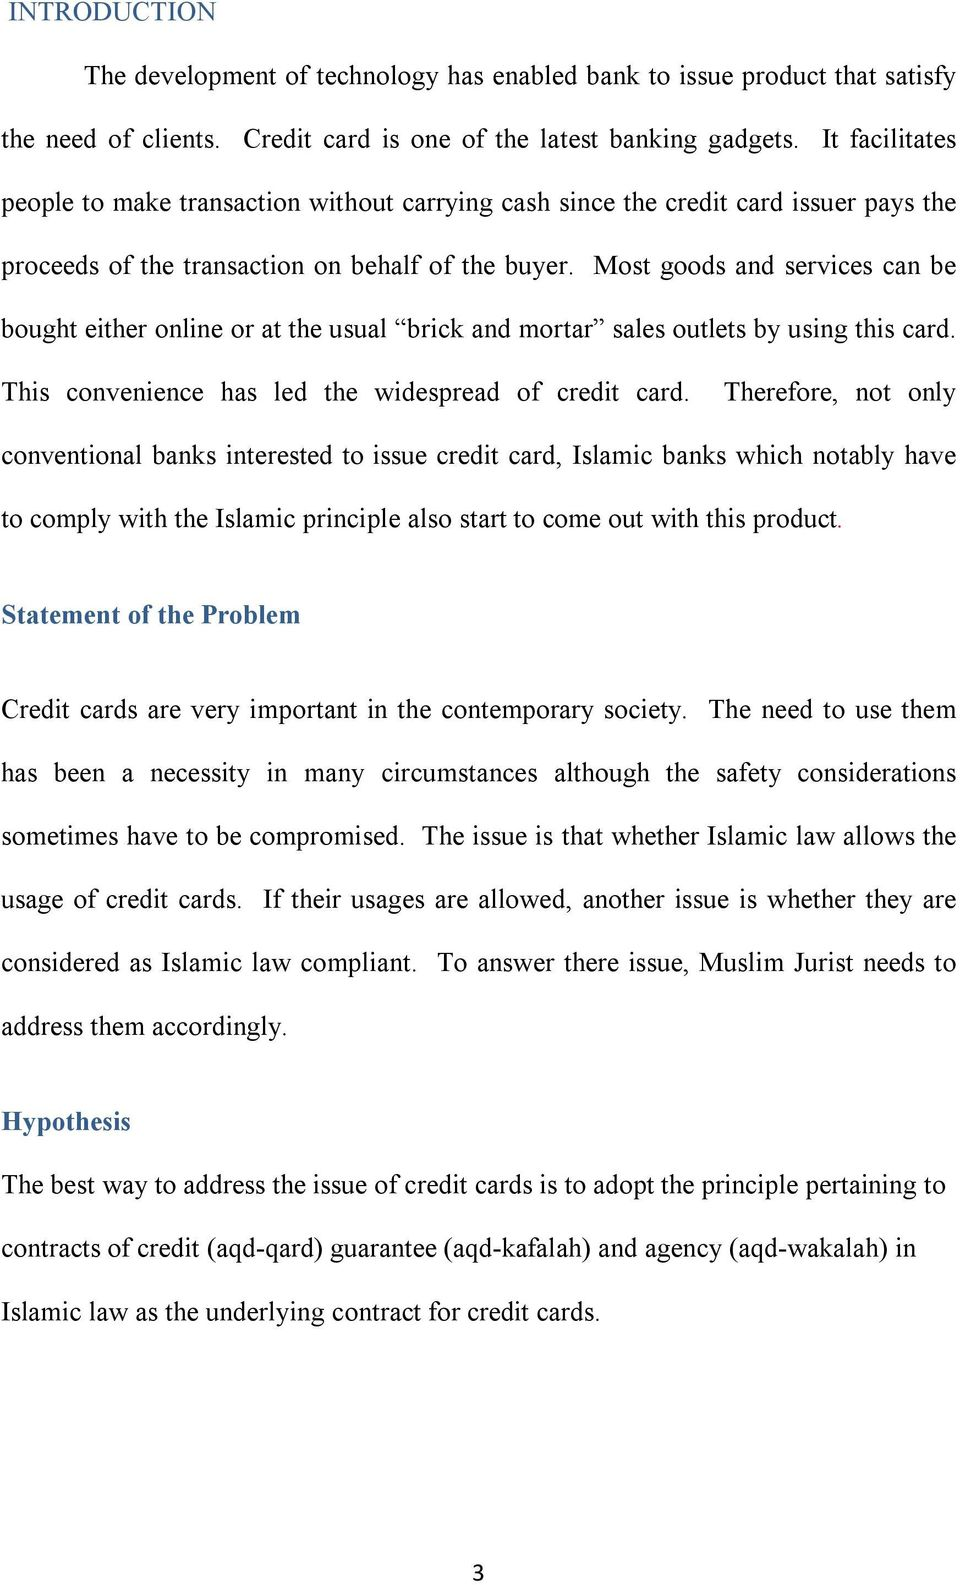 CREDIT CARDS FROM SHAIRIAH PERSPECTIVE - PDF